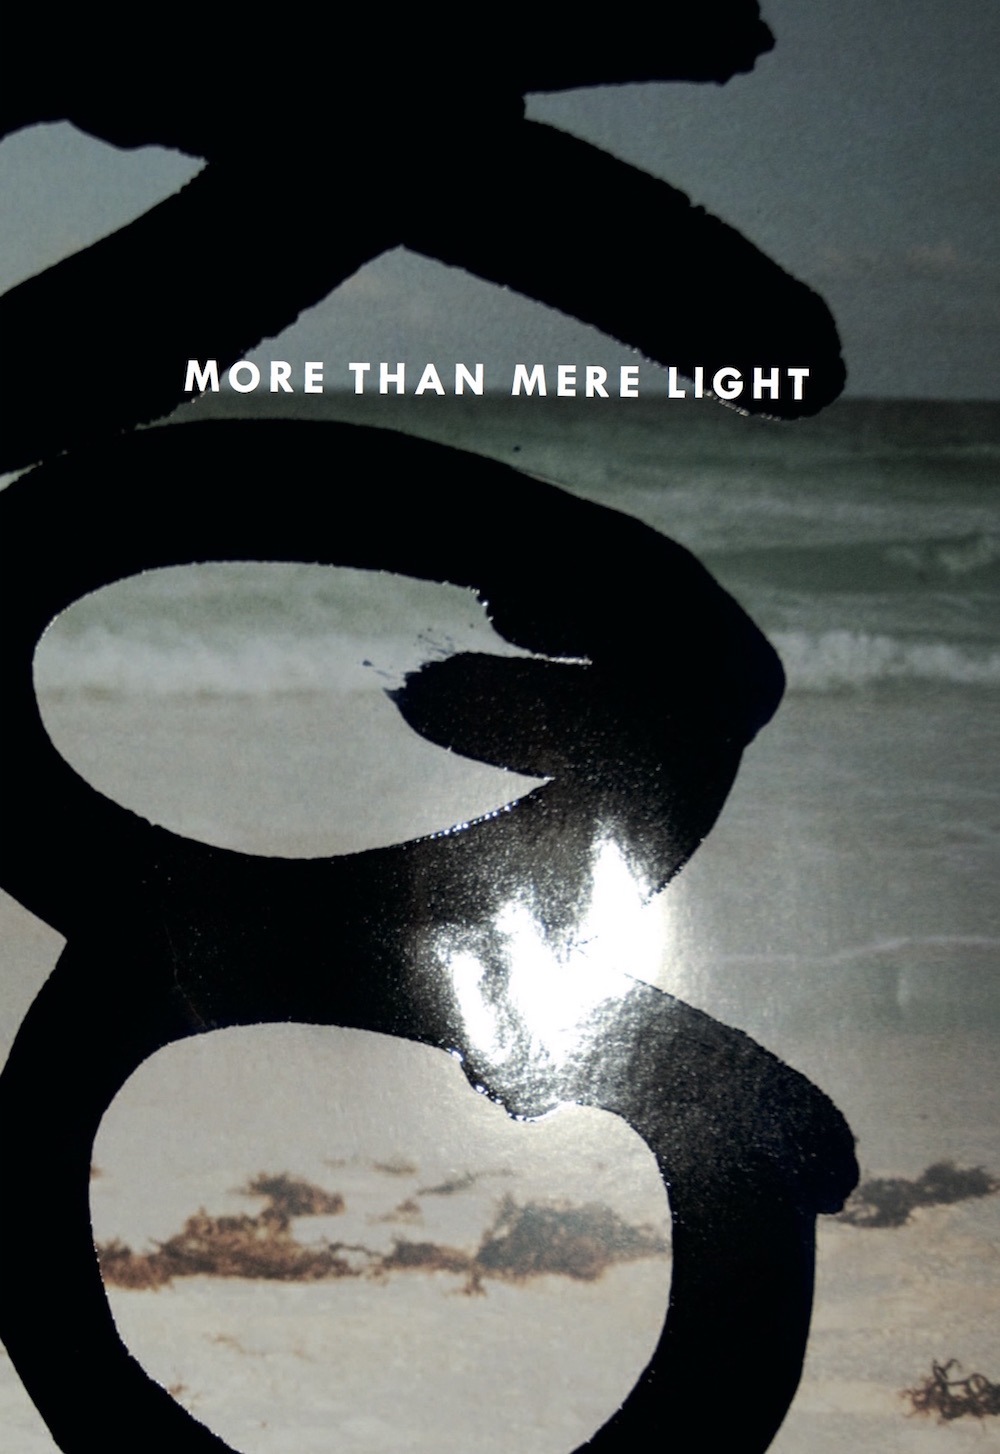 More Than Mere Light